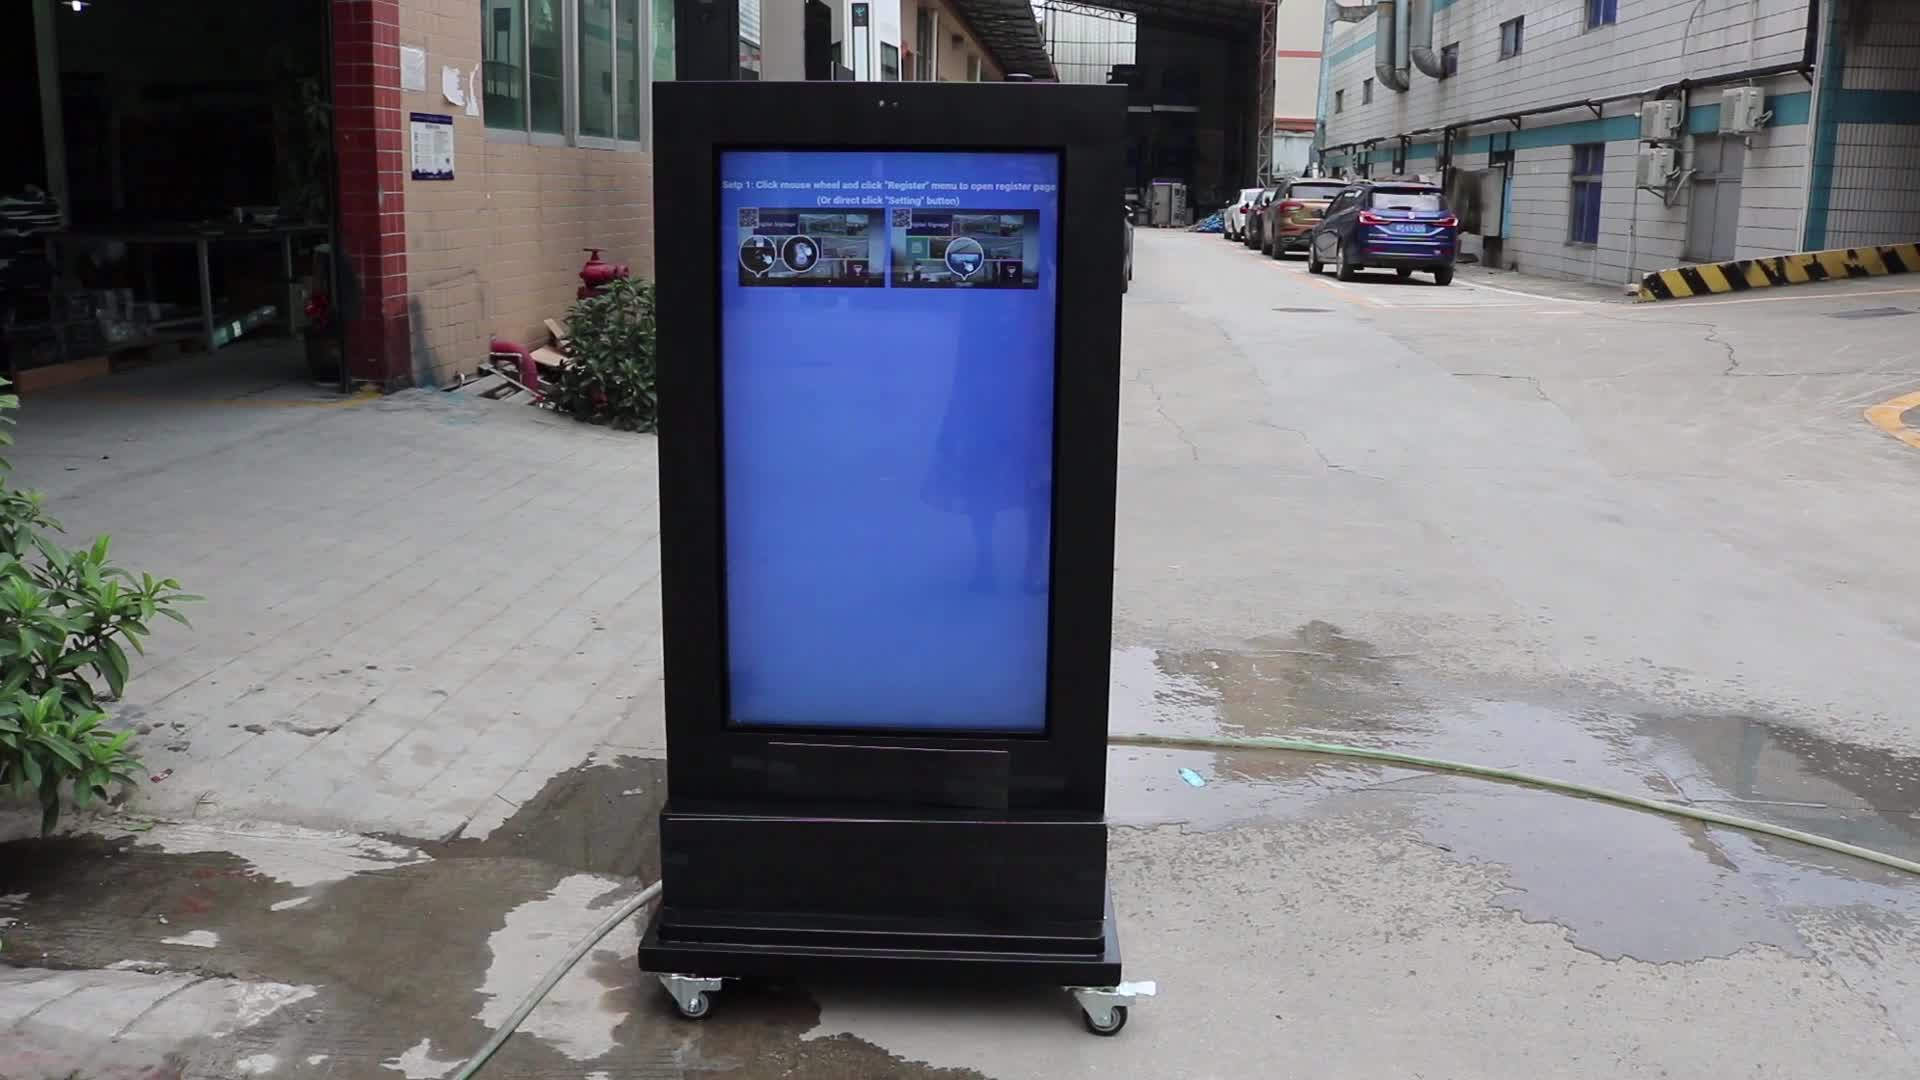 Baru 43 Inci Baterai Powered Digital Signage 2500 Nits Kecerahan Tinggi DC Powered Tahan Air Monitor Outdoor Totem